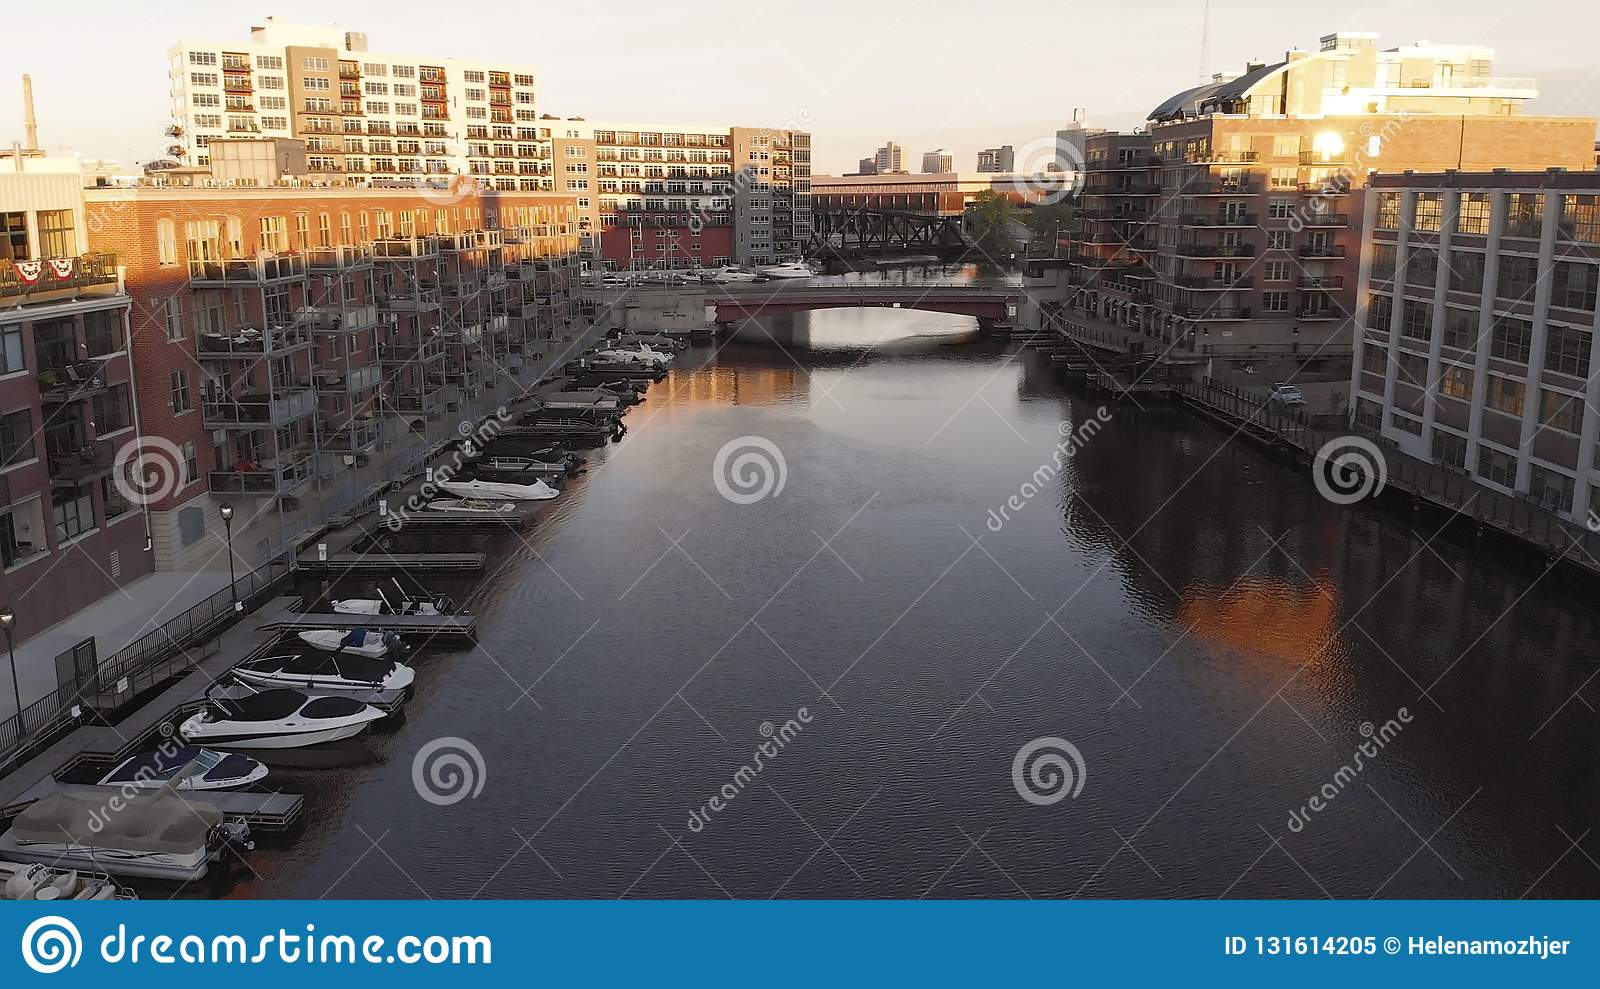 Milwaukee river in downtown, harbor districts of Milwaukee, Wisconsin, United States. Real estate, condos in downtown. Aerial view